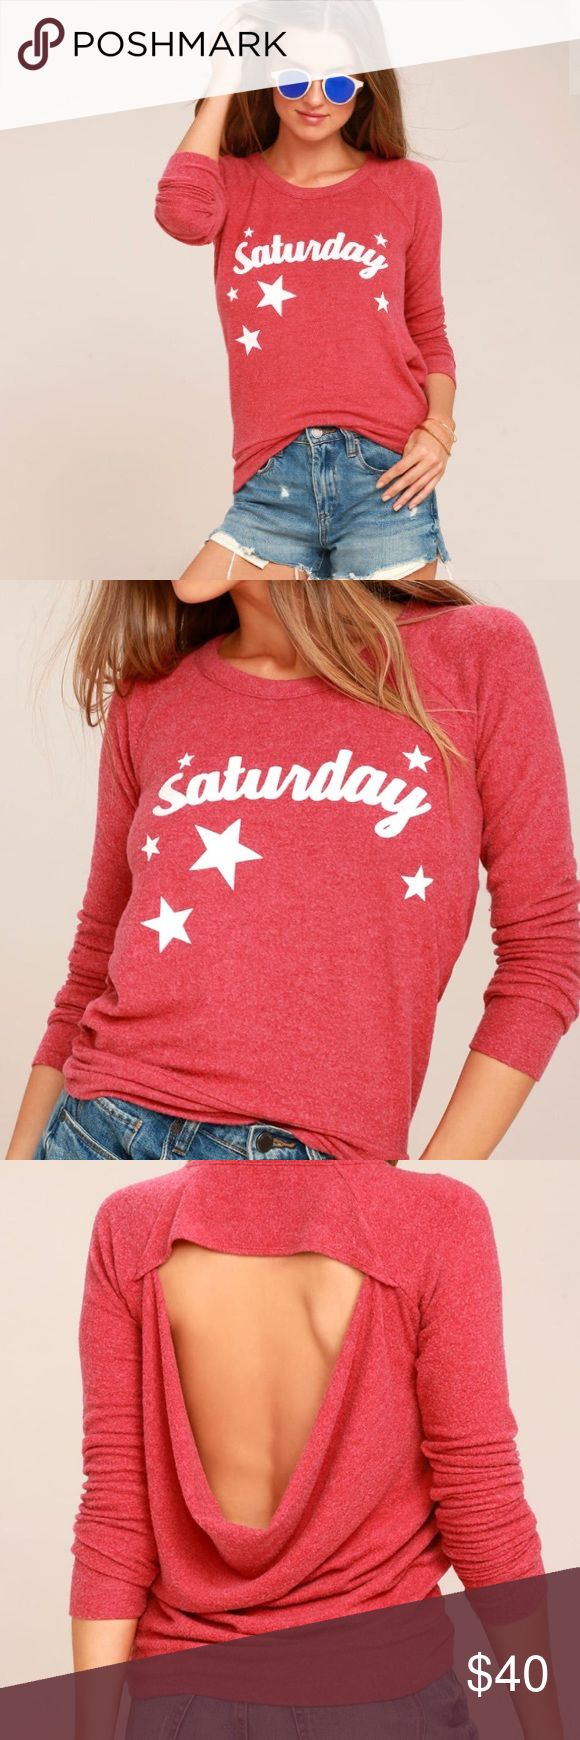 "Chaser ""Saturday"" Open Back Sweatshirt Adorable heathered red open back sweatshirt from Chaser. So soft!! Features ""Saturday"" on front with stars and has cut-out back. Color is shown best in stock photos. Brand new with tags. Chaser Tops Sweatshirts & Hoodies"